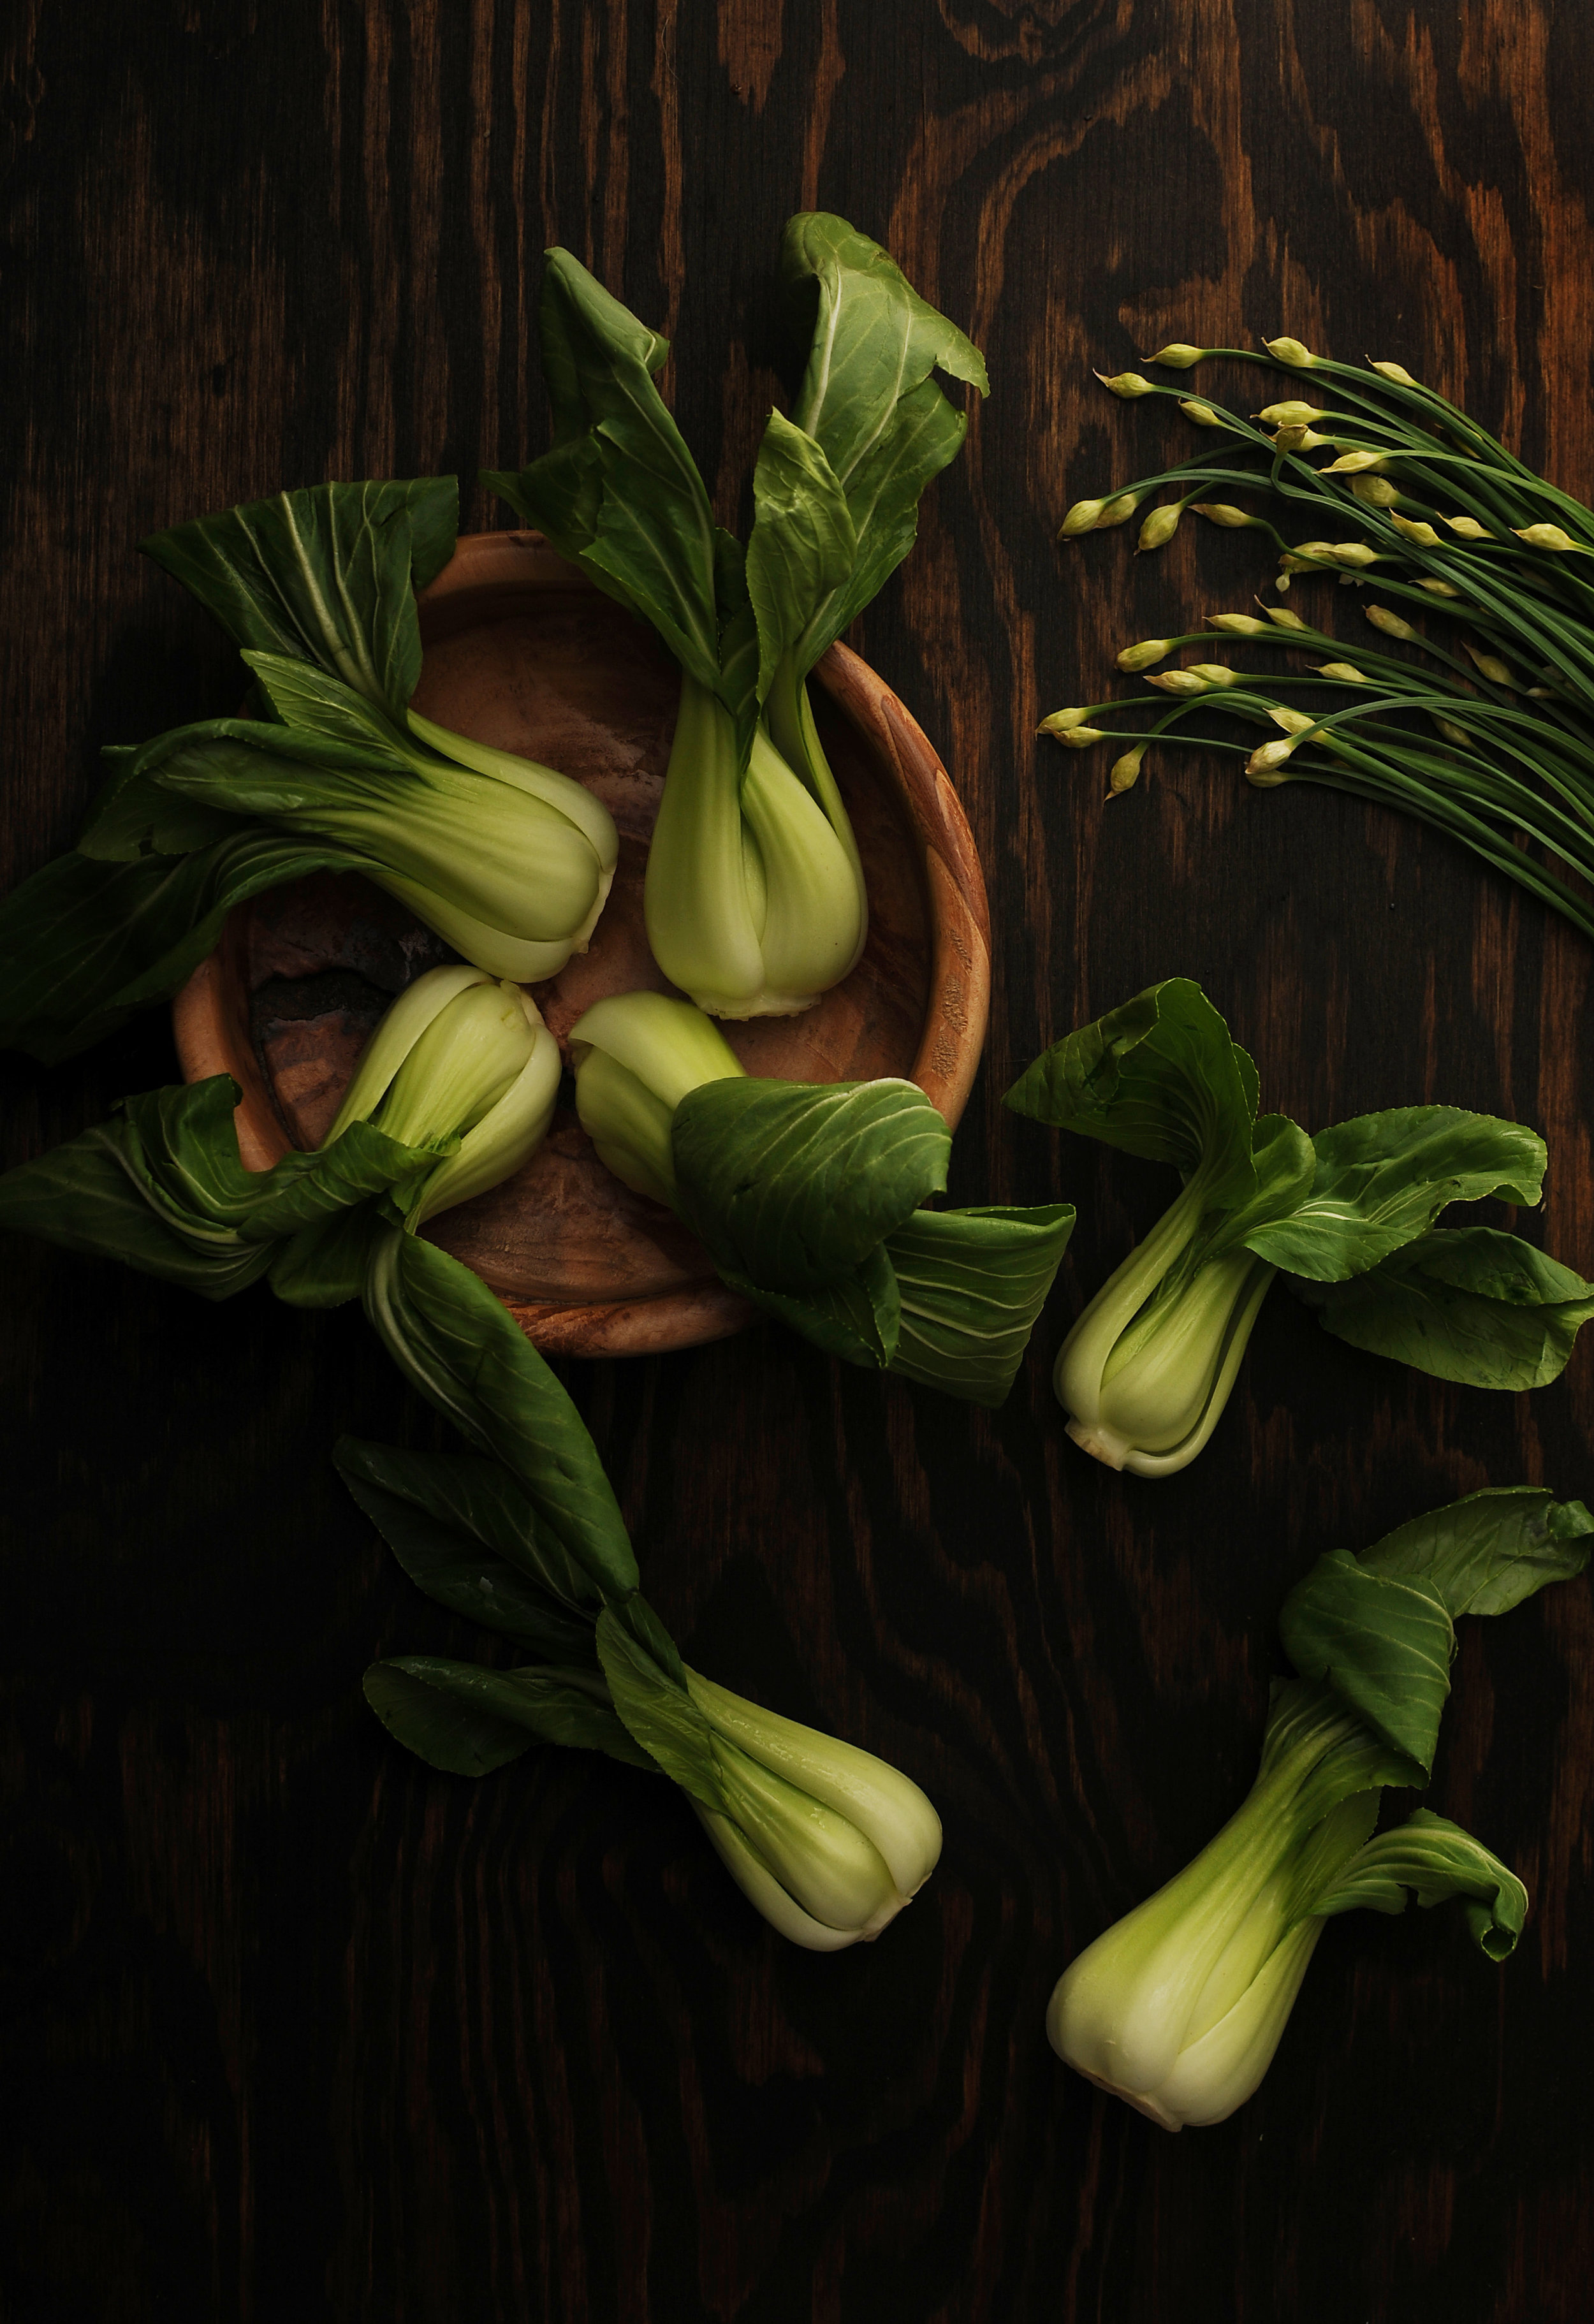 Bok choy - Bok Choy is an excellent source of fiber, Vitamin A, Vitamin B6, Vitamin C, Vitamin K, beta-carotene, as well as folate, and calcium. It is one of the top anti-inflammatory foods, which allows it to reduce the risk for conditions like heart disease. It can also help prevent cancer. Overall, it is considered one of healthiest leafy green vegetables.